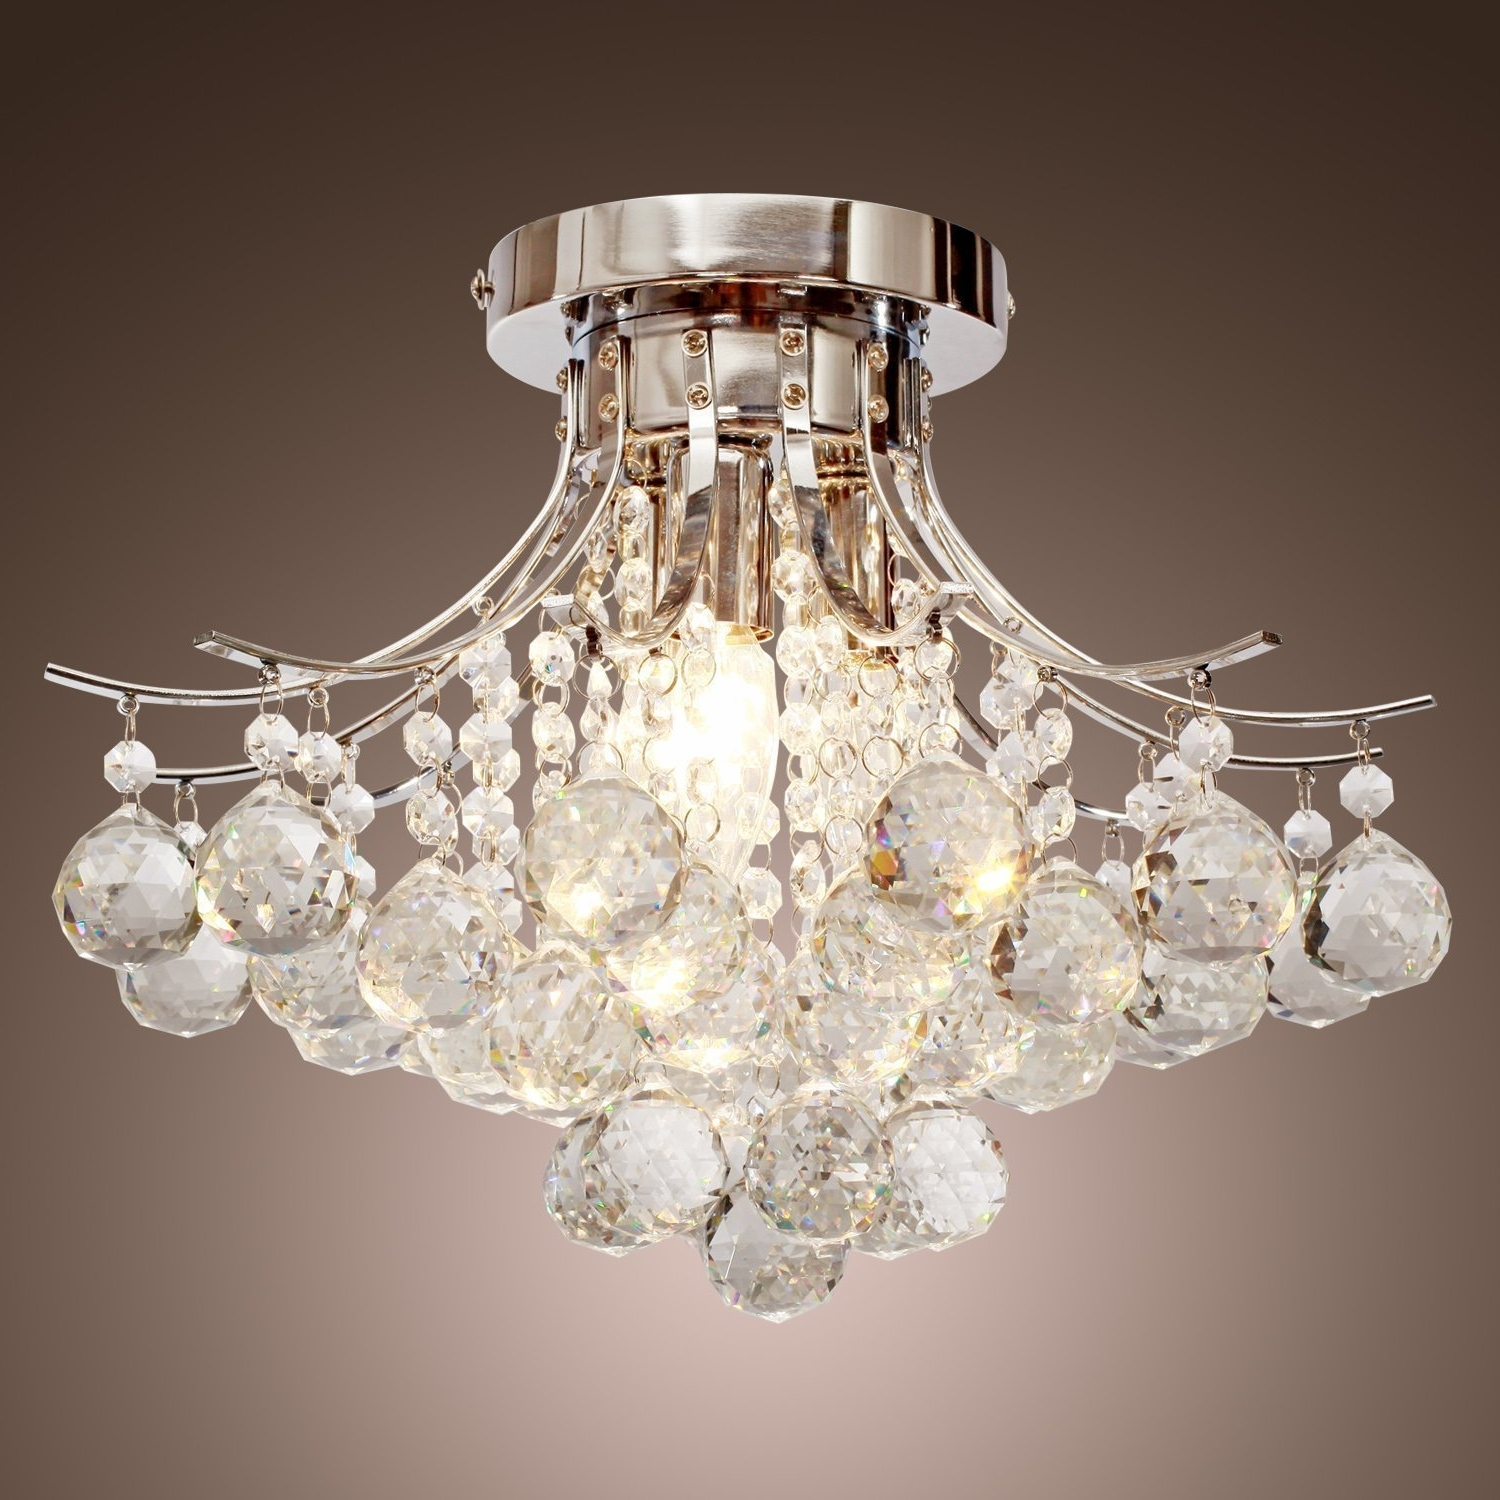 Sparkly Chandeliers In Widely Used Locoâ Chrome Finish Crystal Chandelier With 3 Lights, Mini Style (View 9 of 15)